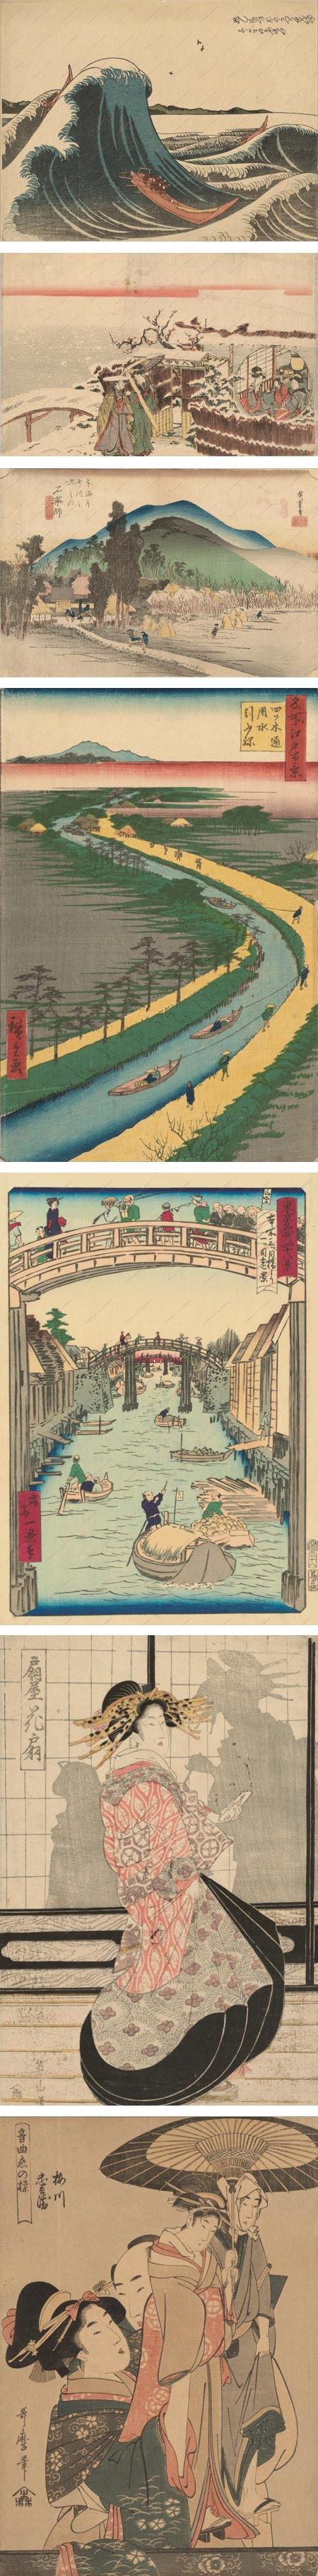 Japanese Prints from the 18th and 19th centuries: Katsushika Hokusai, Katsukawa Shunko&#772; Ii, Utagawa Hirosige I, Utagawa Hirosige, Shosai Ikkei, Kikugawa Eiza, Kitagawa Utamaro